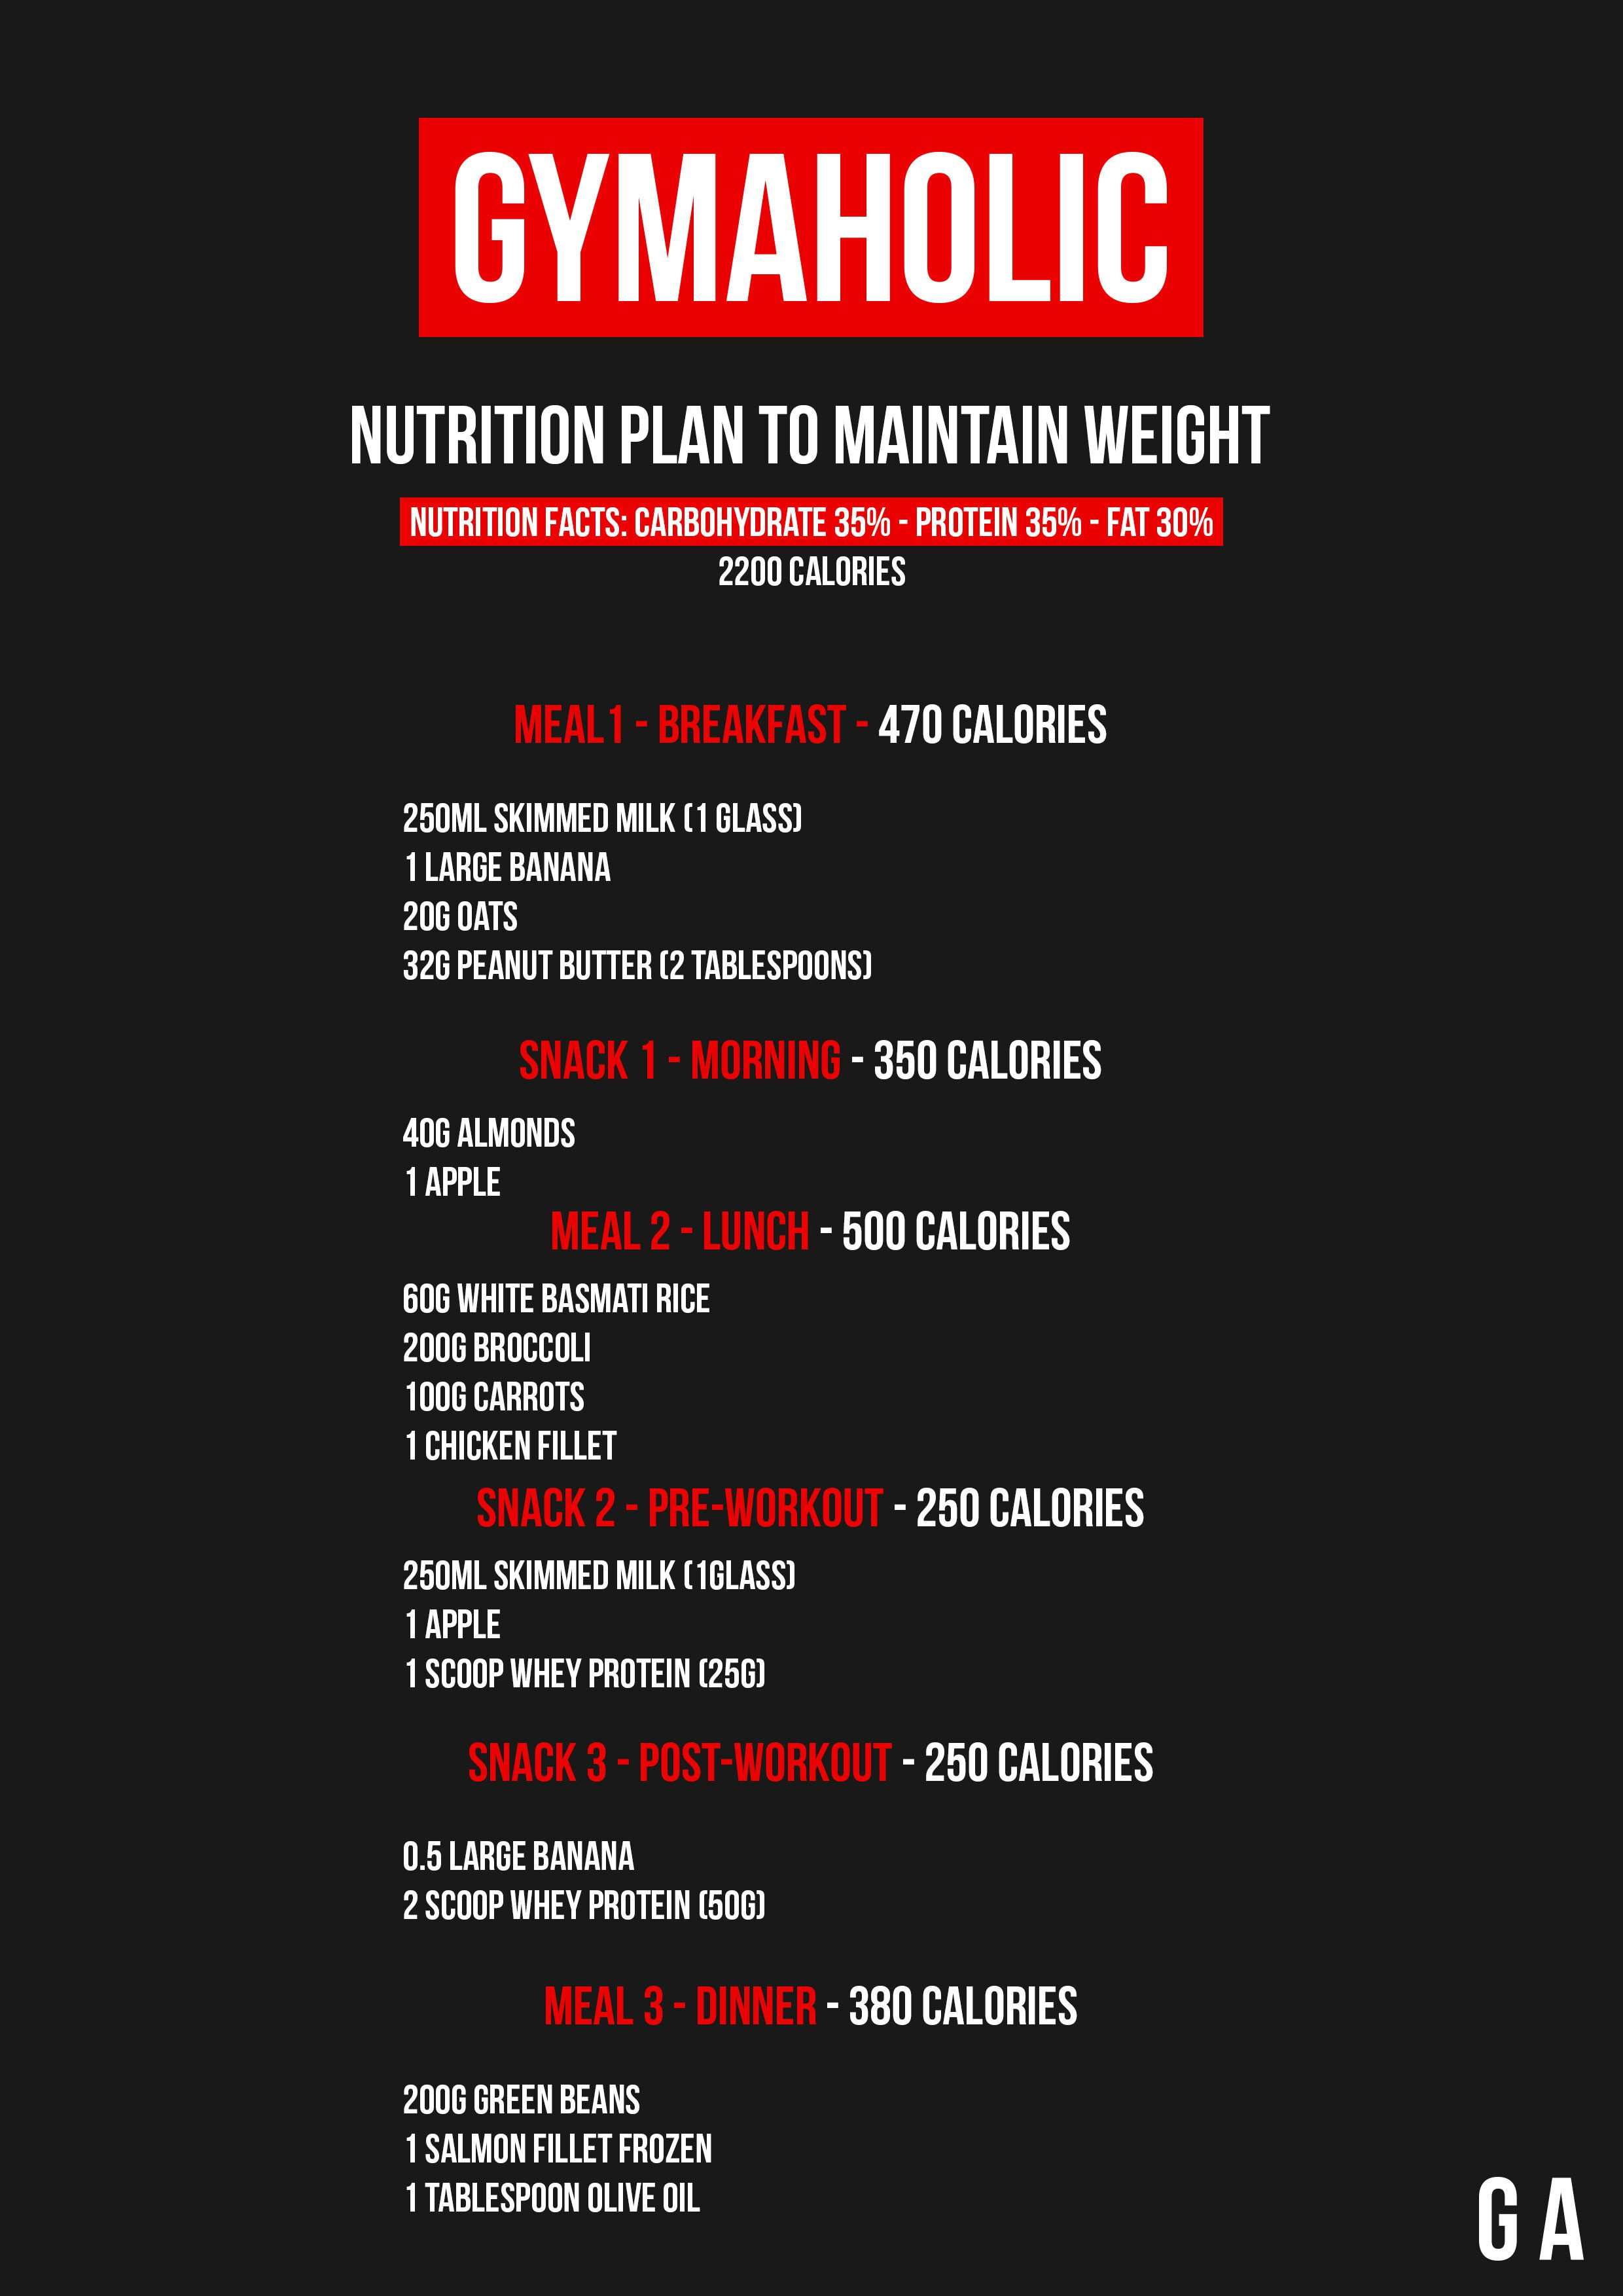 Women's Nutrition Plan To Get Toned And Lose Fat